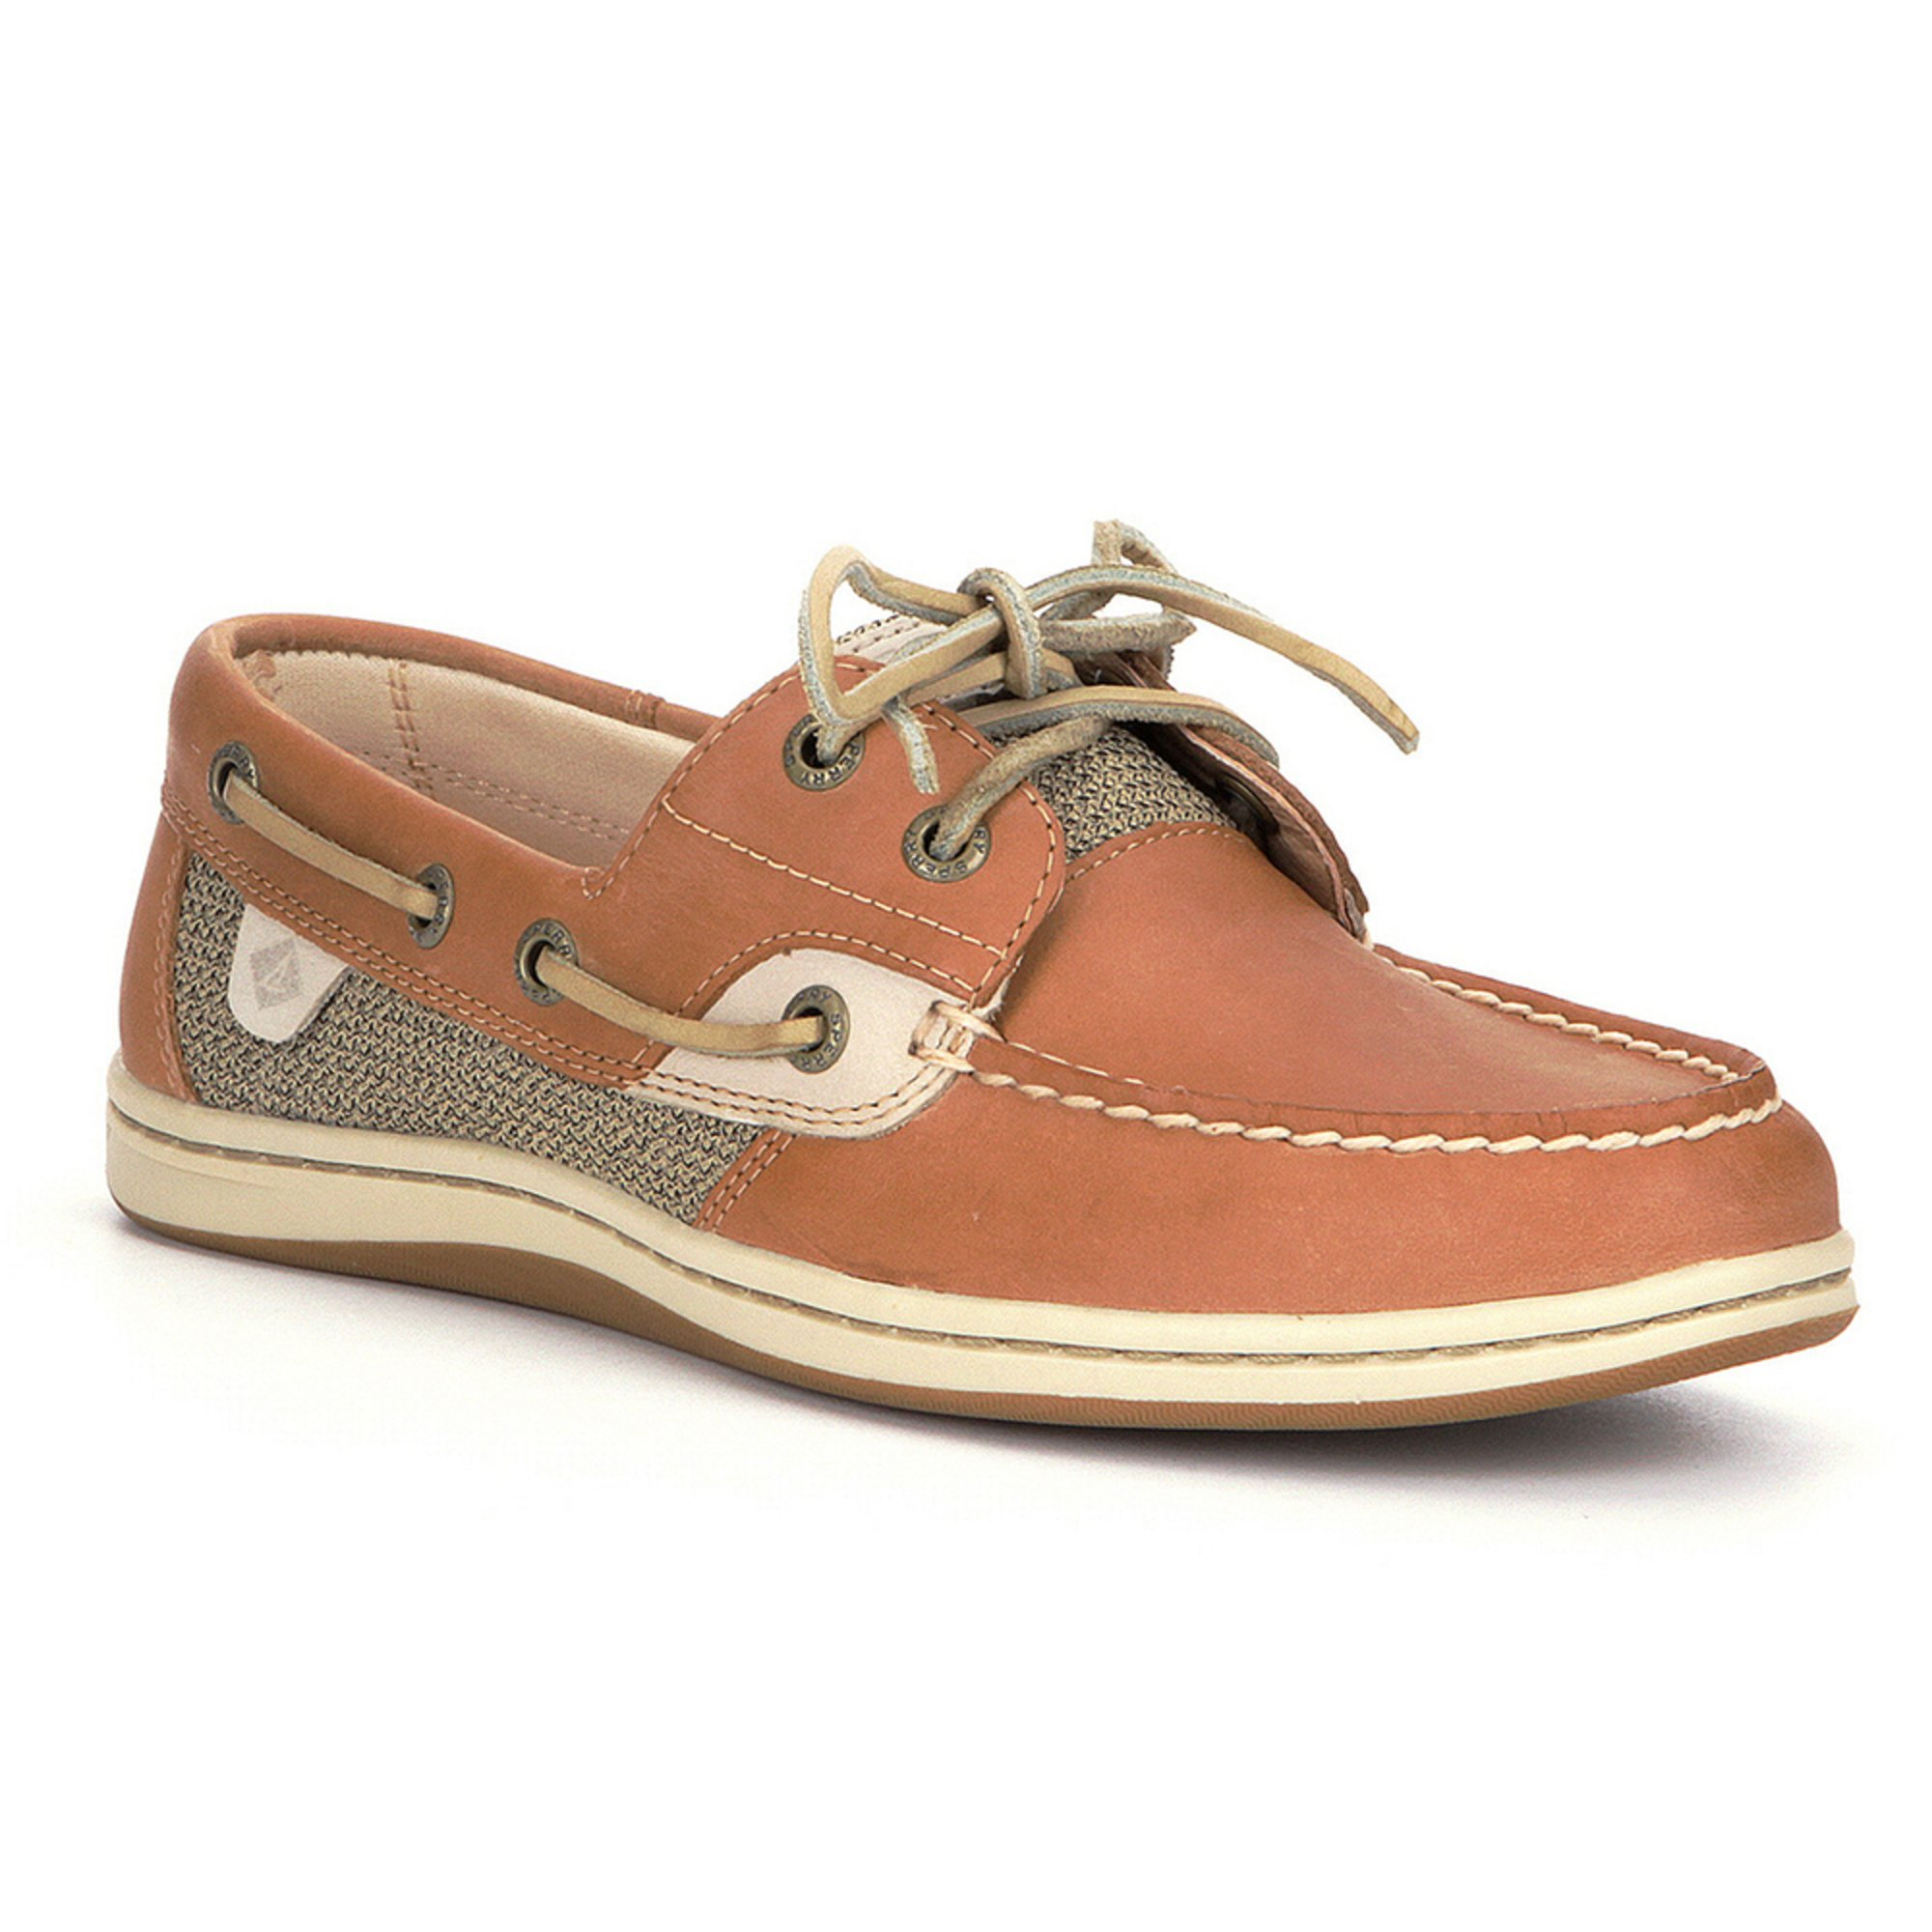 Sperry Top-Sider. Sperry Women s Koifish Women s Boat Shoe d18f3ba27